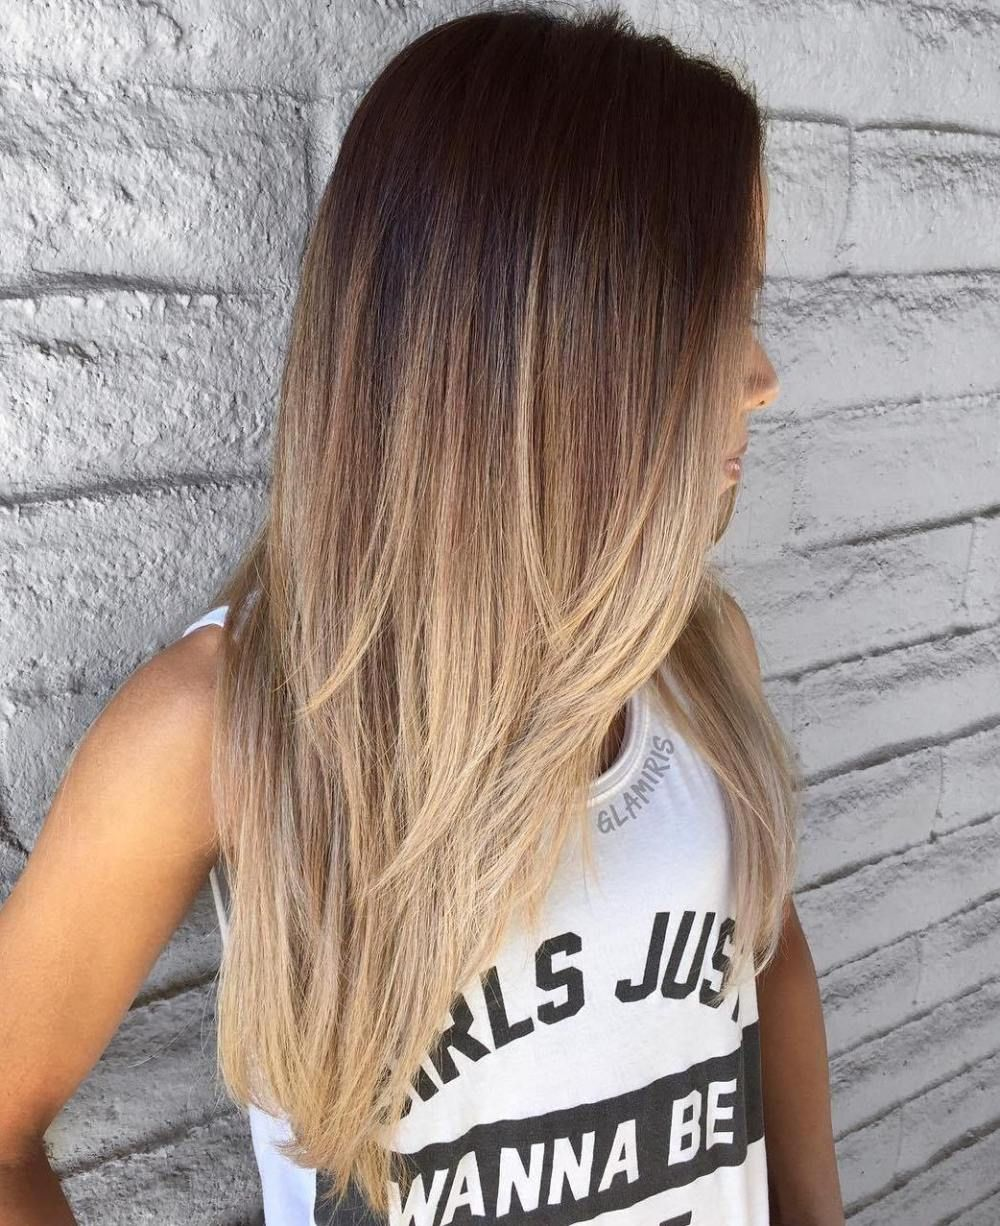 20 Hairstyles For Summer 2019: Find Your Holiday Hair!